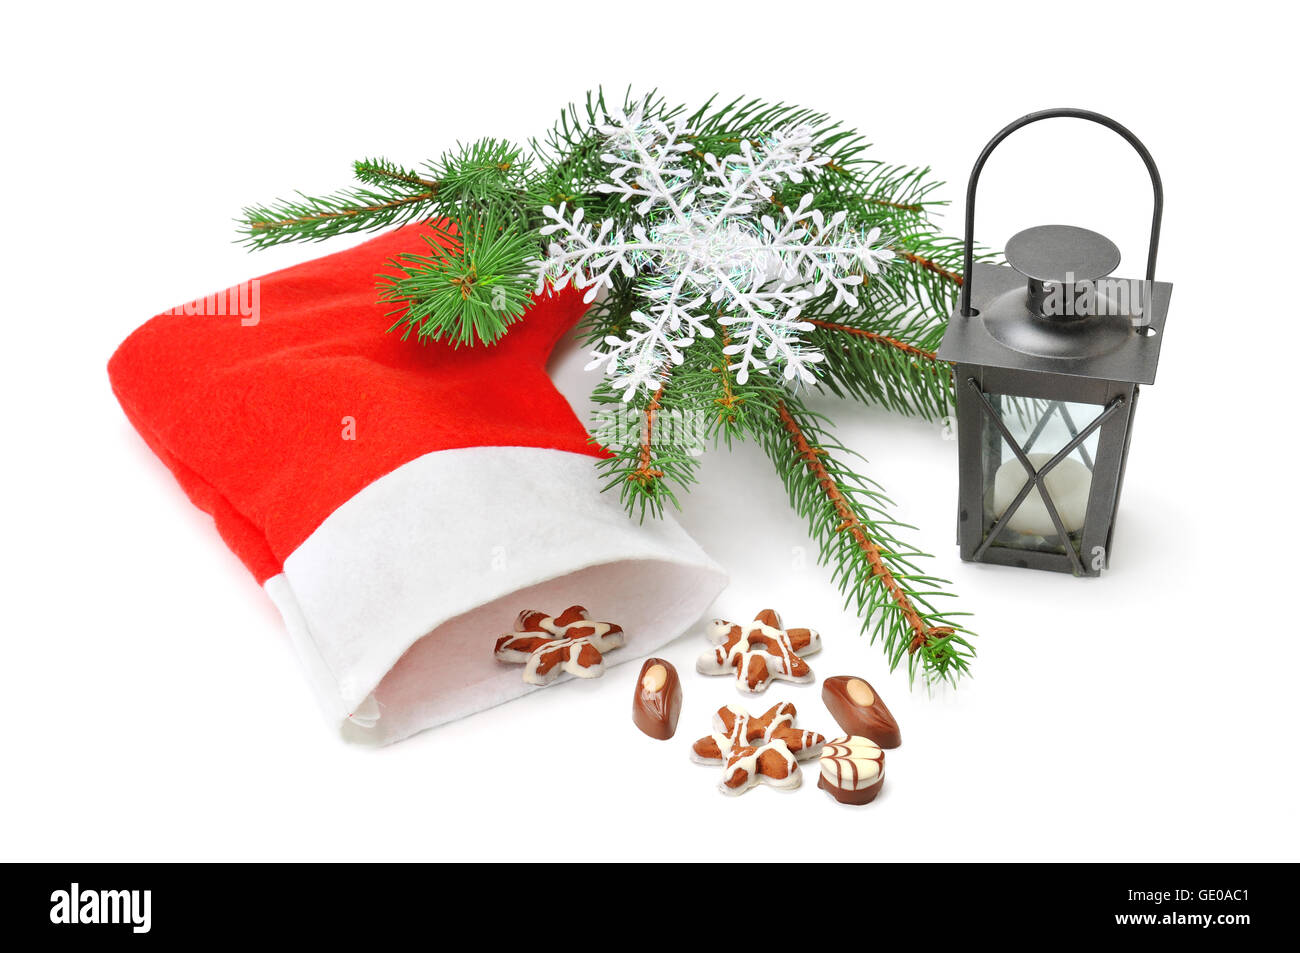 Christmas Stocking, lantern and spruce isolated on white background - Stock Image